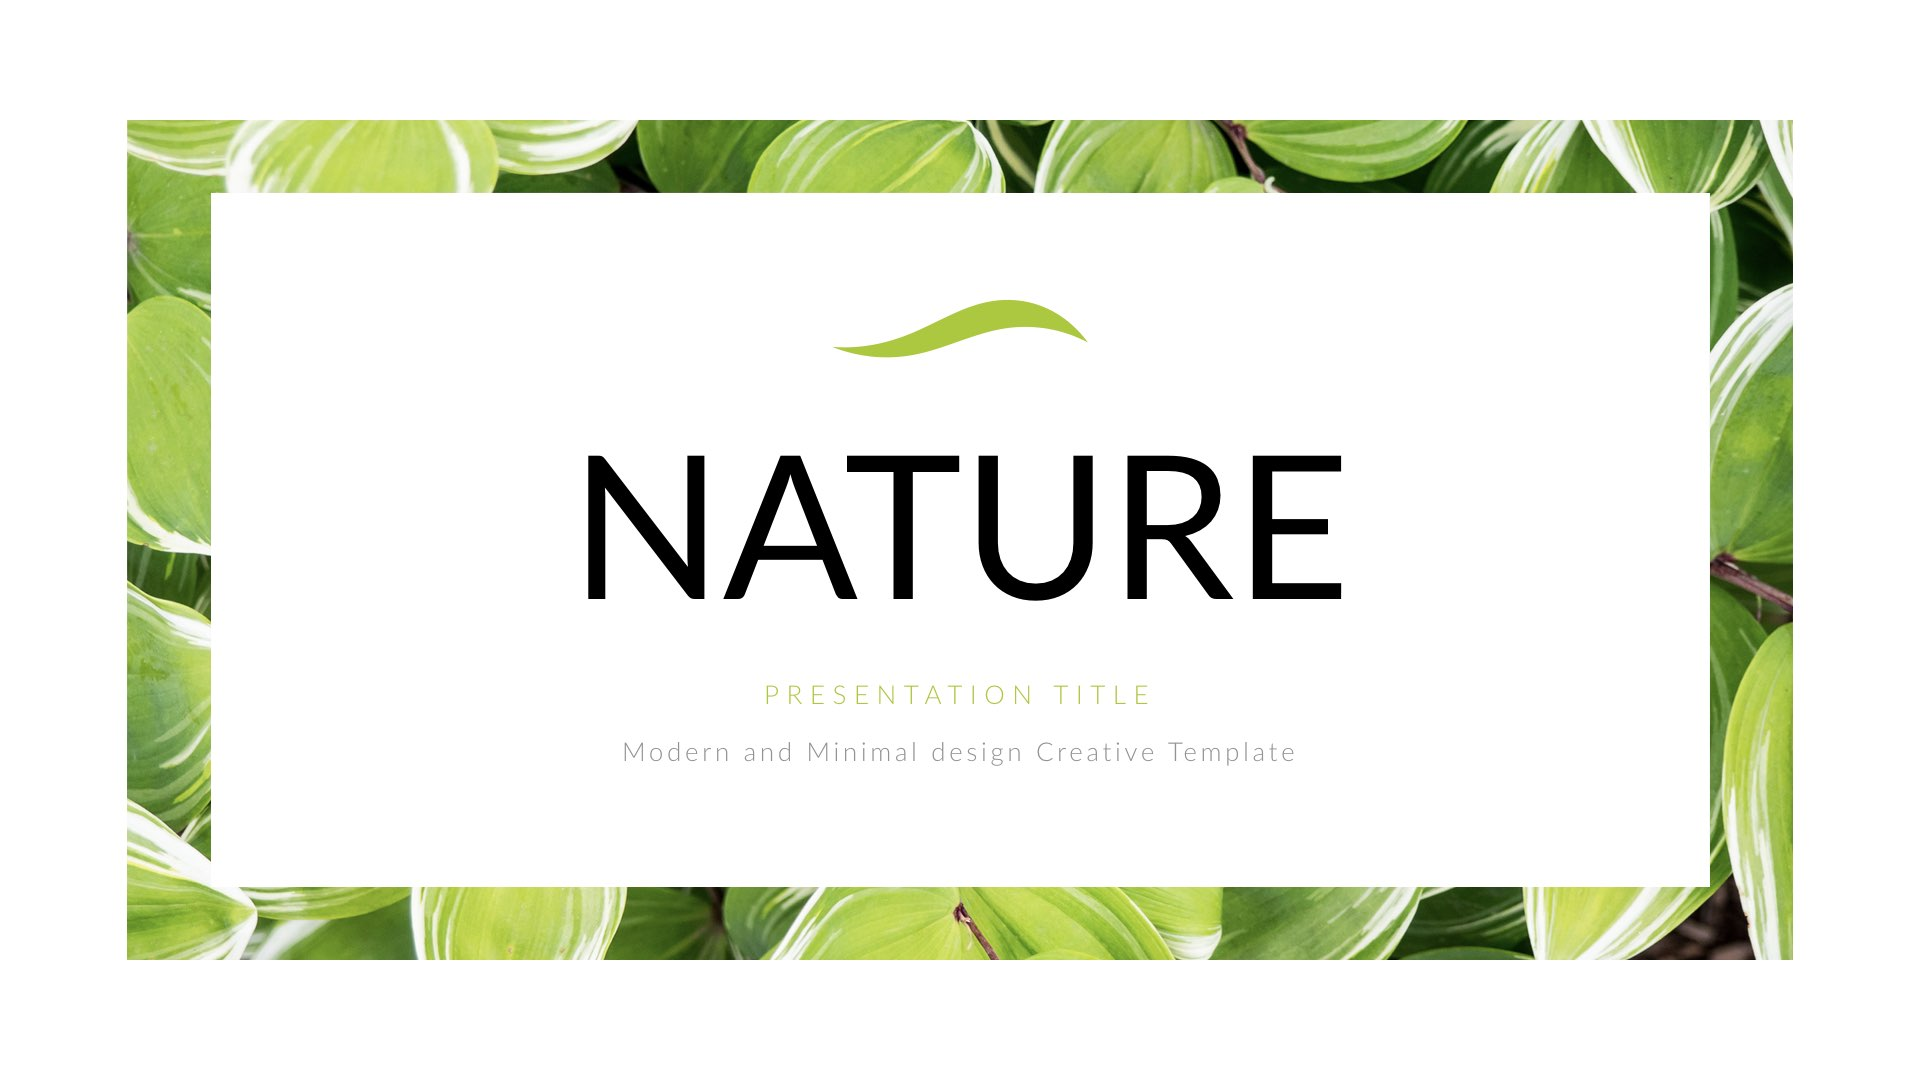 Nature powerpoint background 001 collection 15 wallpapers nature simple creative powerpoint template by 5yue graphicriver alramifo Choice Image